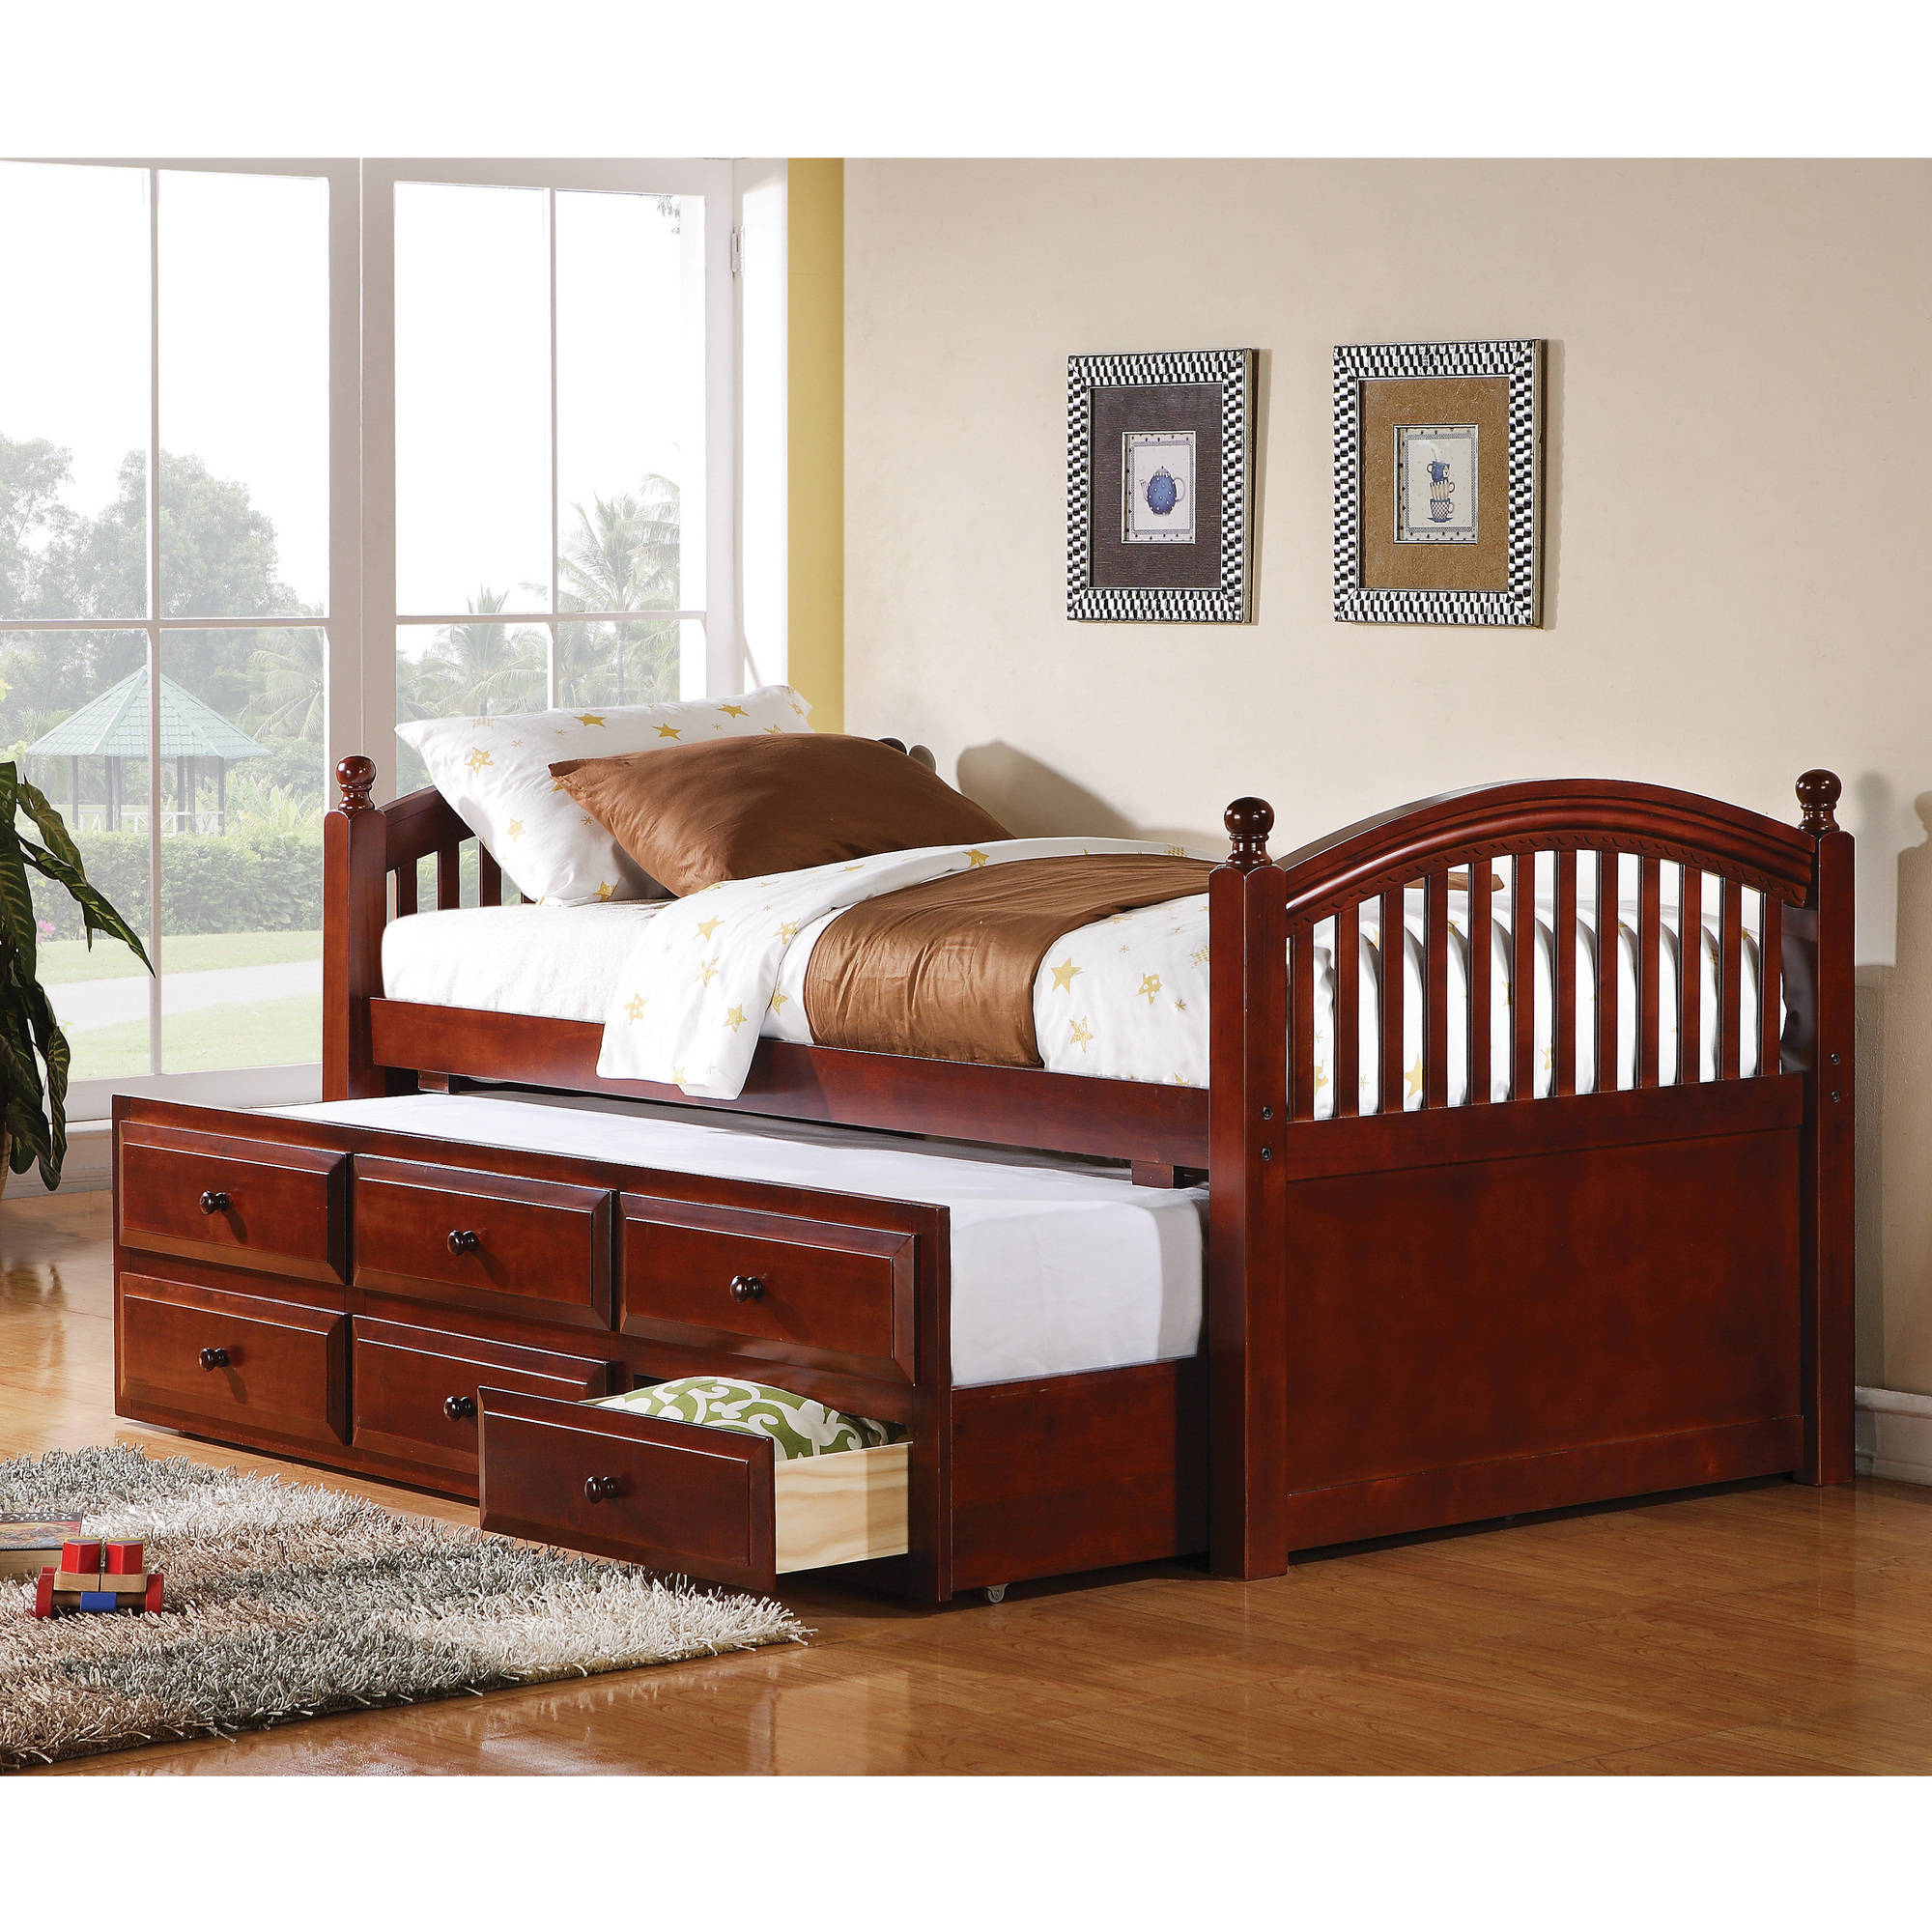 Coaster Twin Day Bed with trundle in Chestnut Finish (Box 1 of 3) by Coaster Company